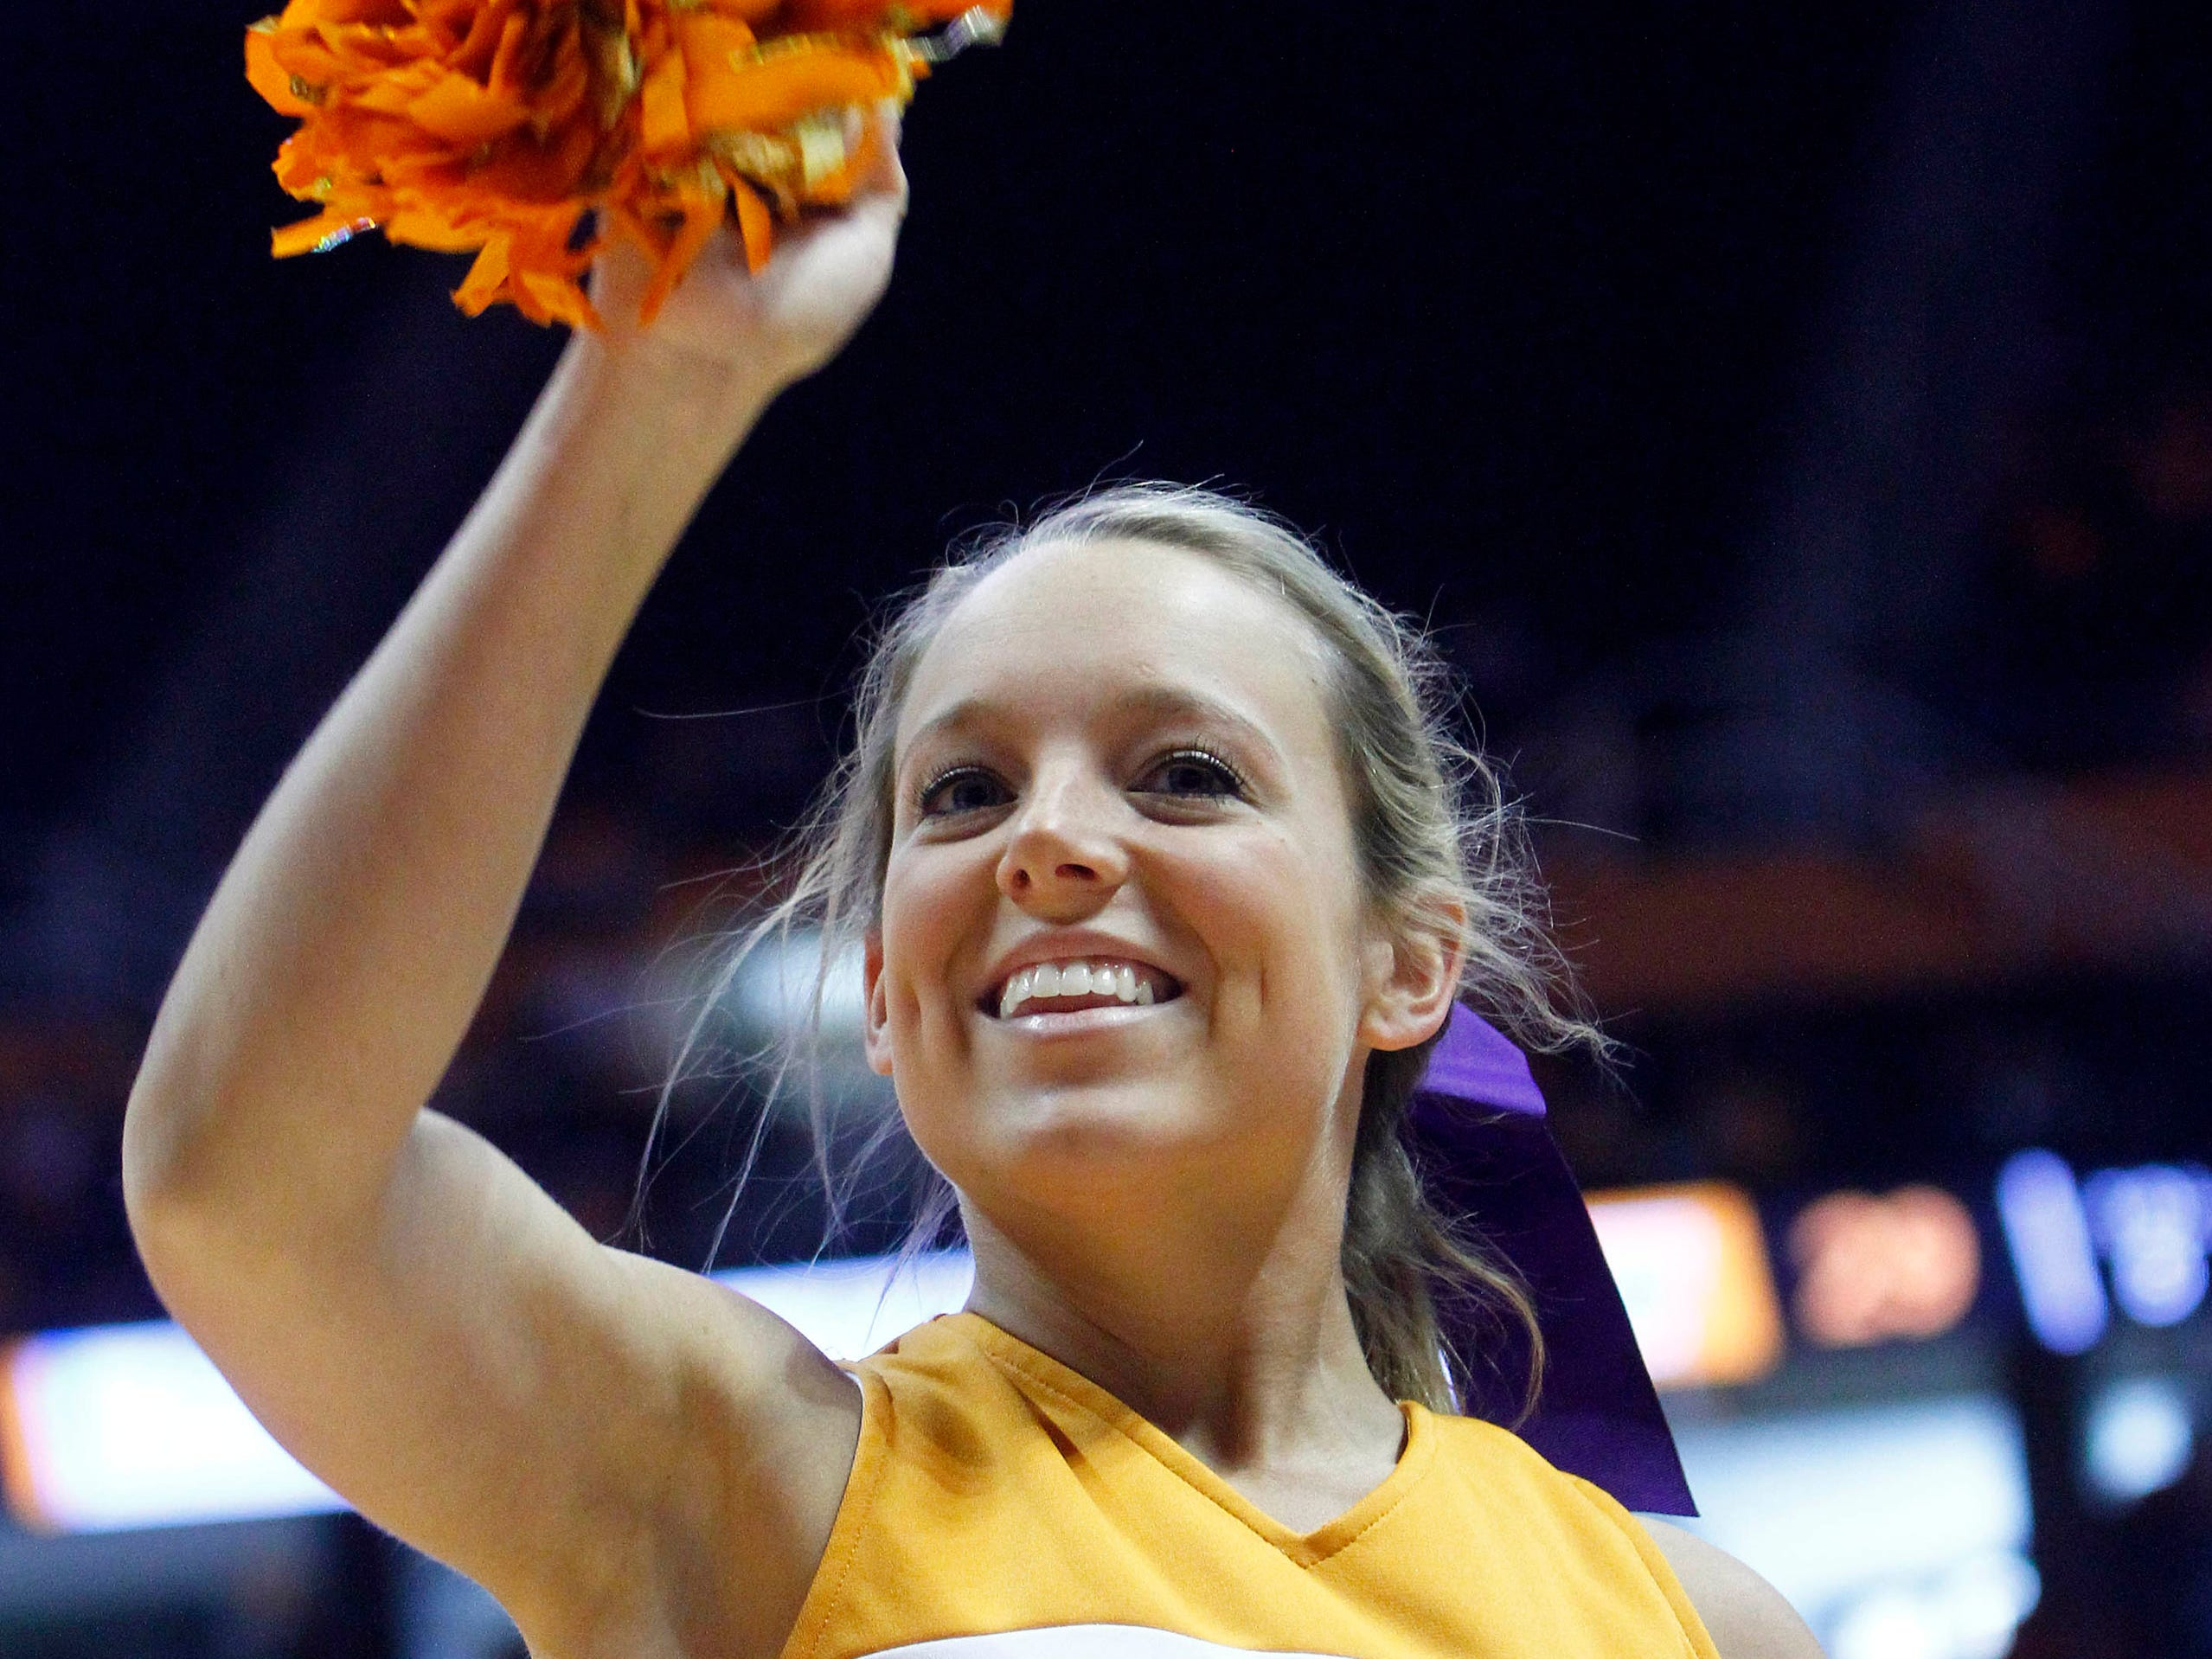 A Tennessee cheerleader performs during an NCAA college basketball game between Tennessee and Alabama on Sunday, Jan. 20, 2013, in Knoxville, Tenn. (AP Photo/Wade Payne)